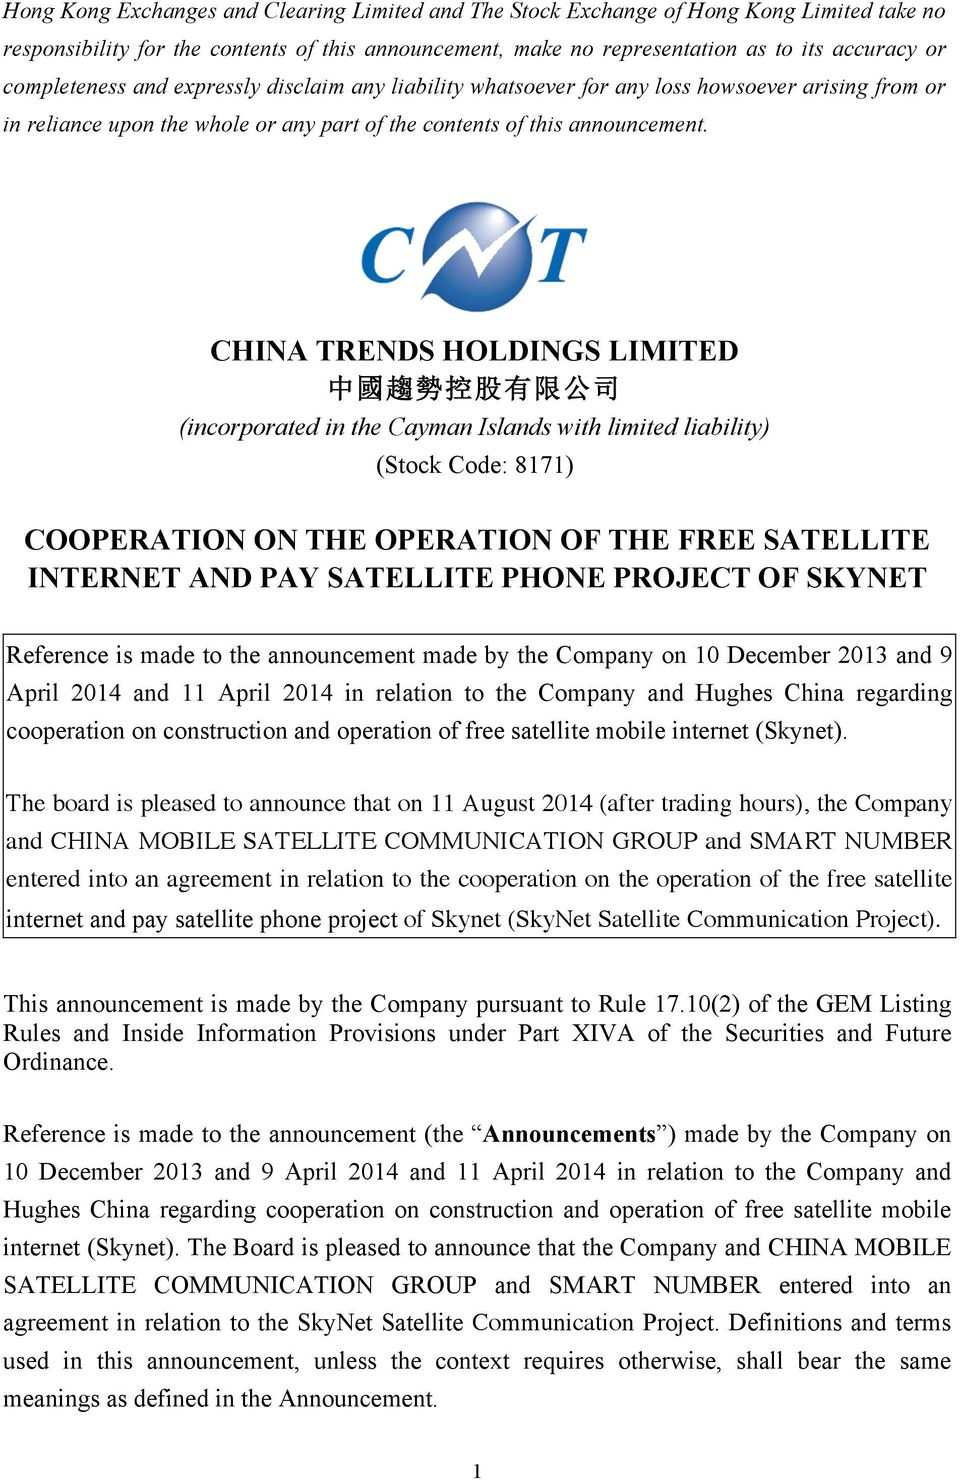 CHINA TRENDS HOLDINGS LIMITED 中 國 趨 勢 控 股 有 限 公 司 (incorporated in the Cayman Islands with limited liability) (Stock Code: 8171) COOPERATION ON THE OPERATION OF THE FREE SATELLITE INTERNET AND PAY